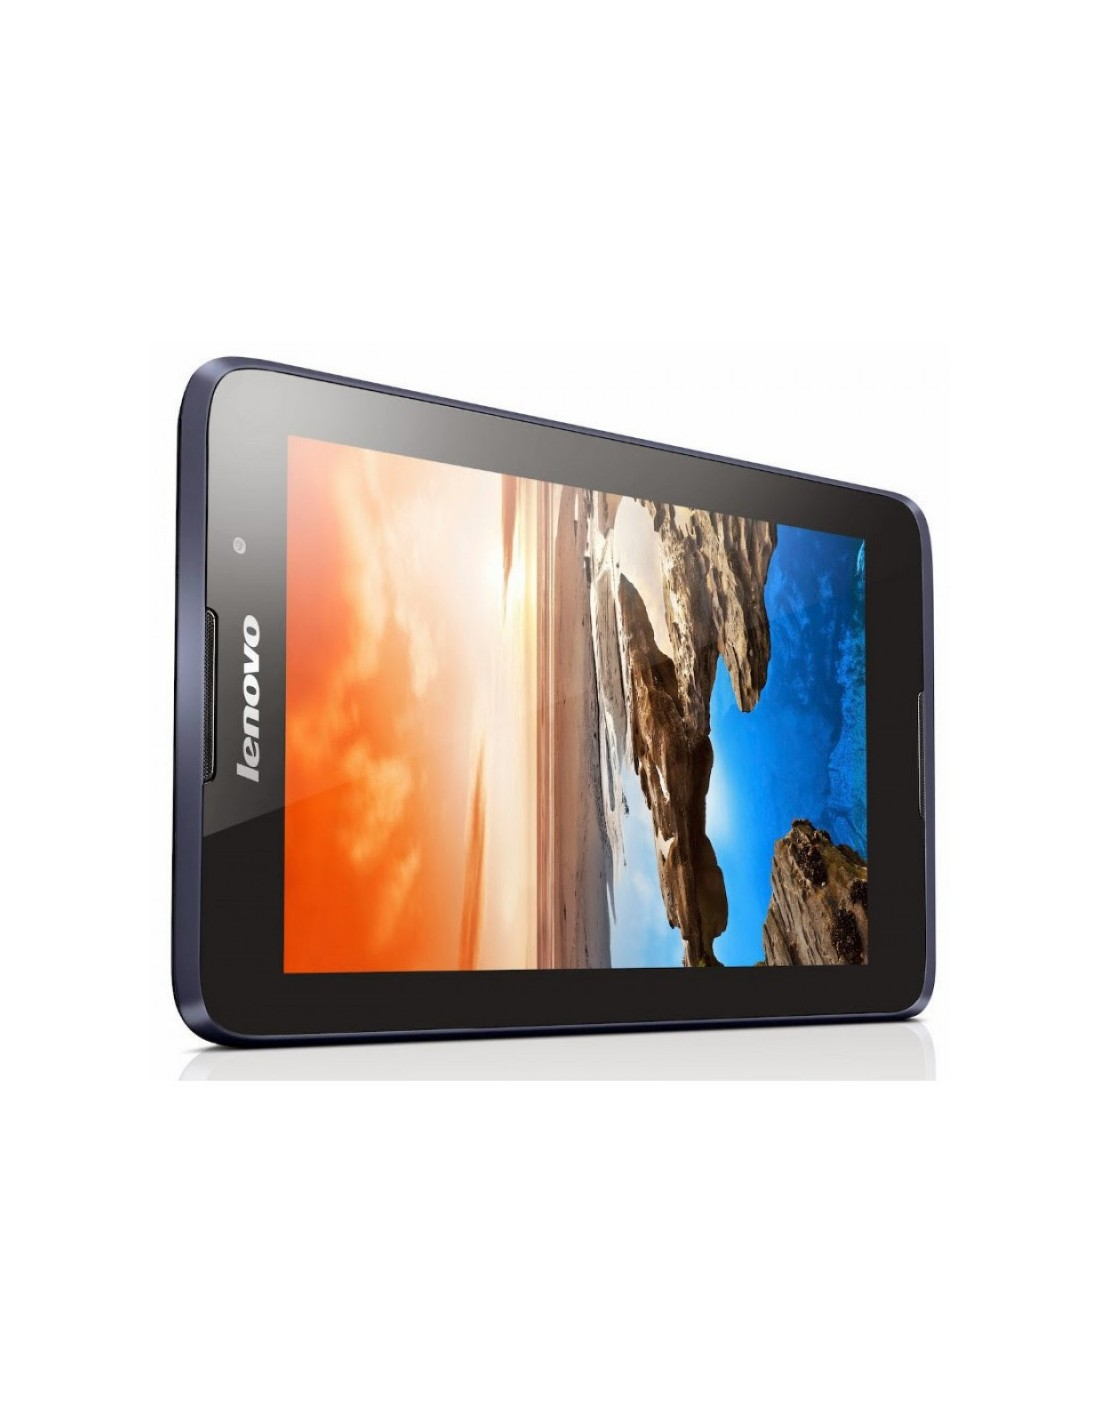 Hard Reset Tab Lenovo A3500 Ausreise Info 16gb Midnight Blue Pricecheck Leading Price Comparison Site South Africa Snapdeal Models Companies Around World Case